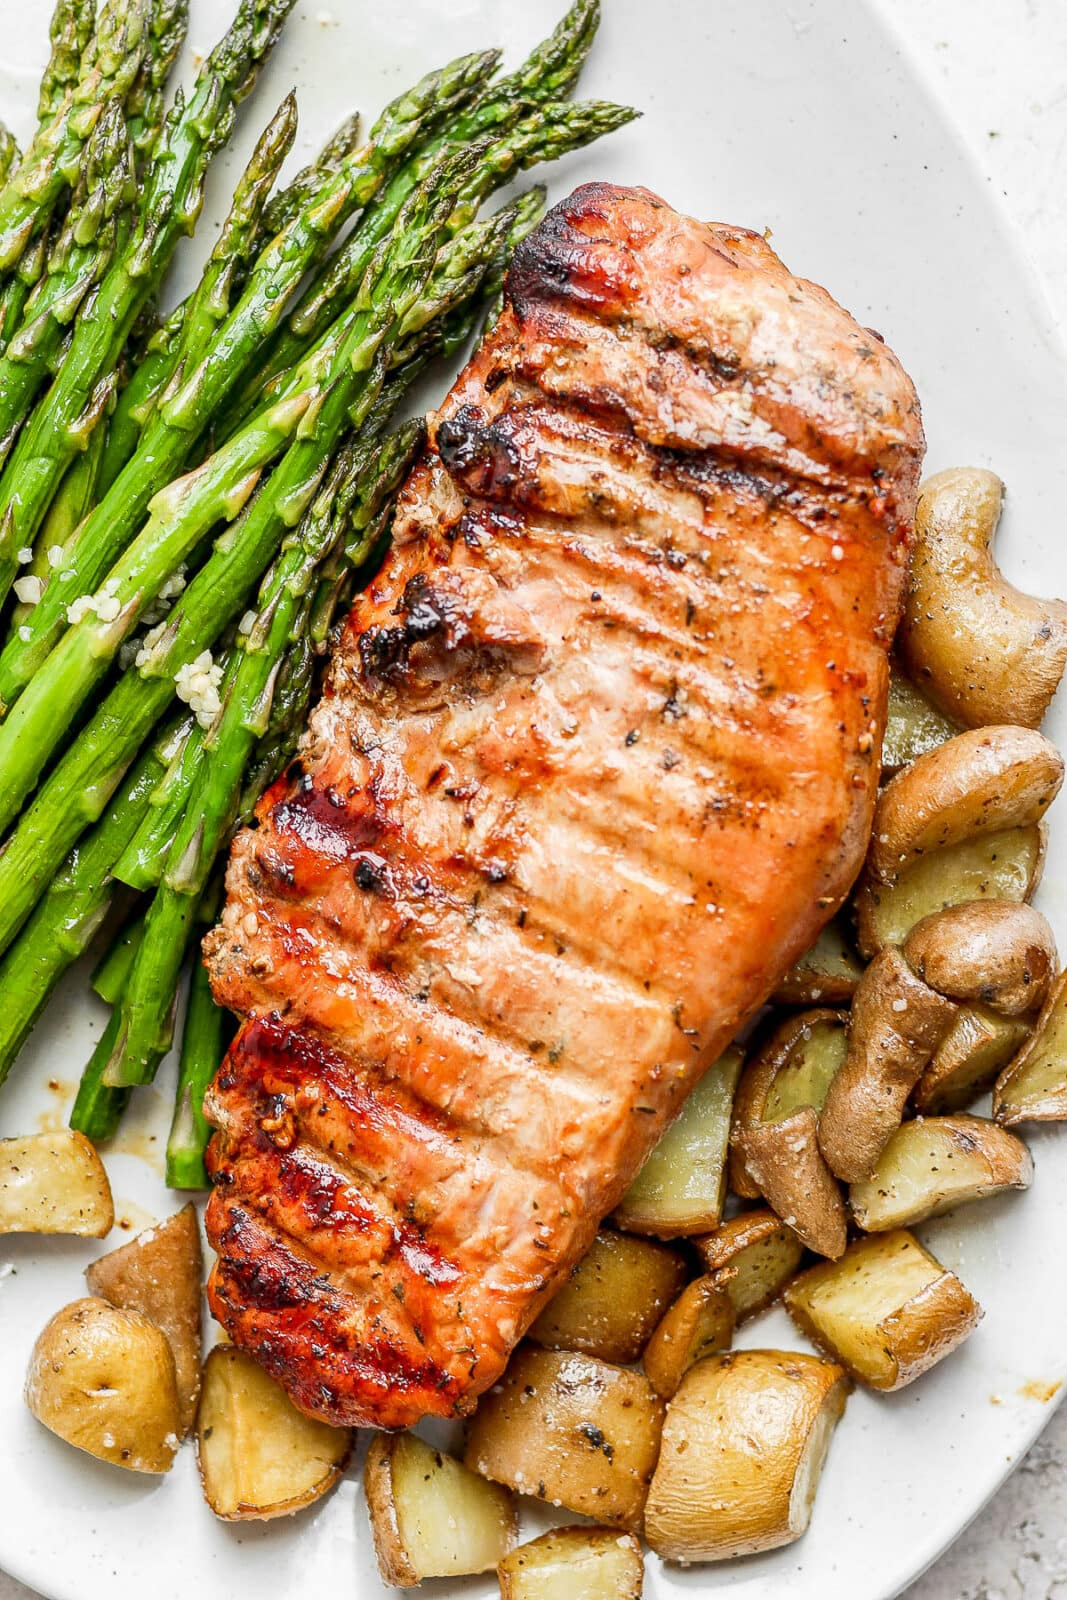 Smoked pork tenderloin on a platter with asparagus and potatoes.